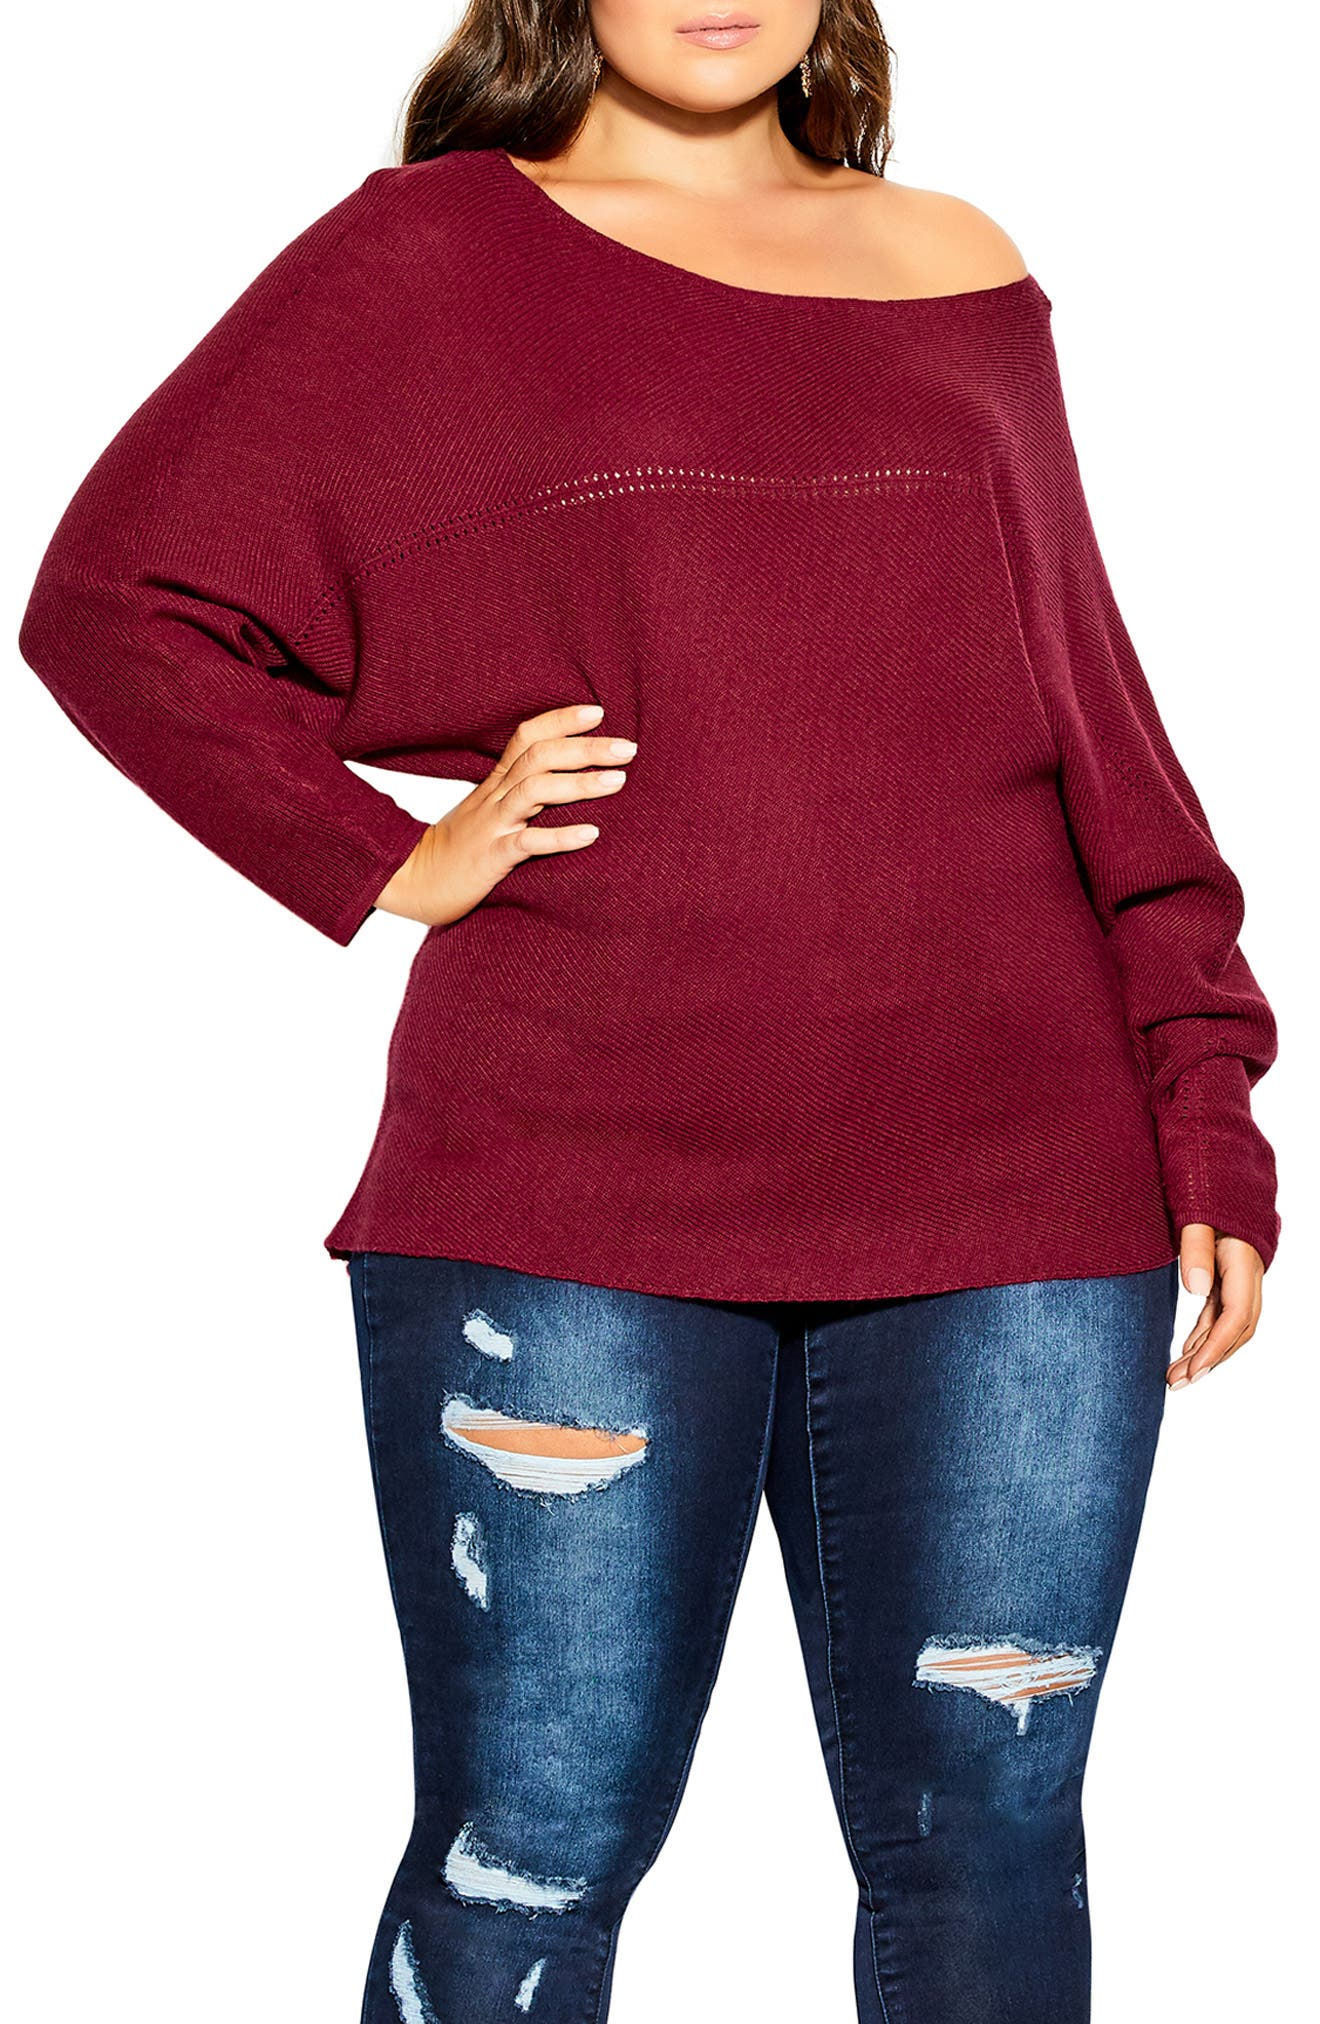 Romance Oversize Off The Shoulder Sweater